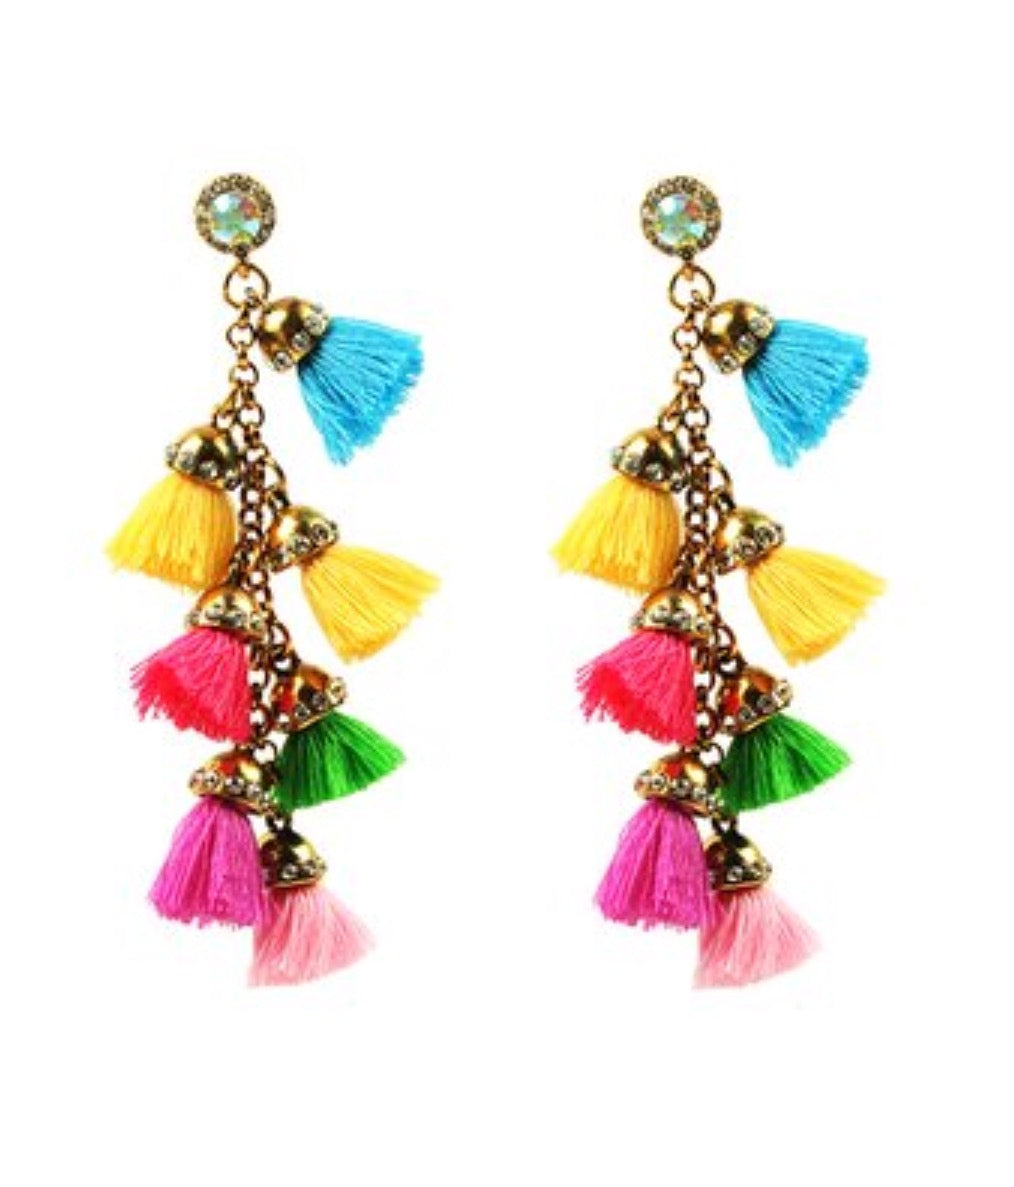 Earrings- Barcelona Tassel Drop in Goldtone